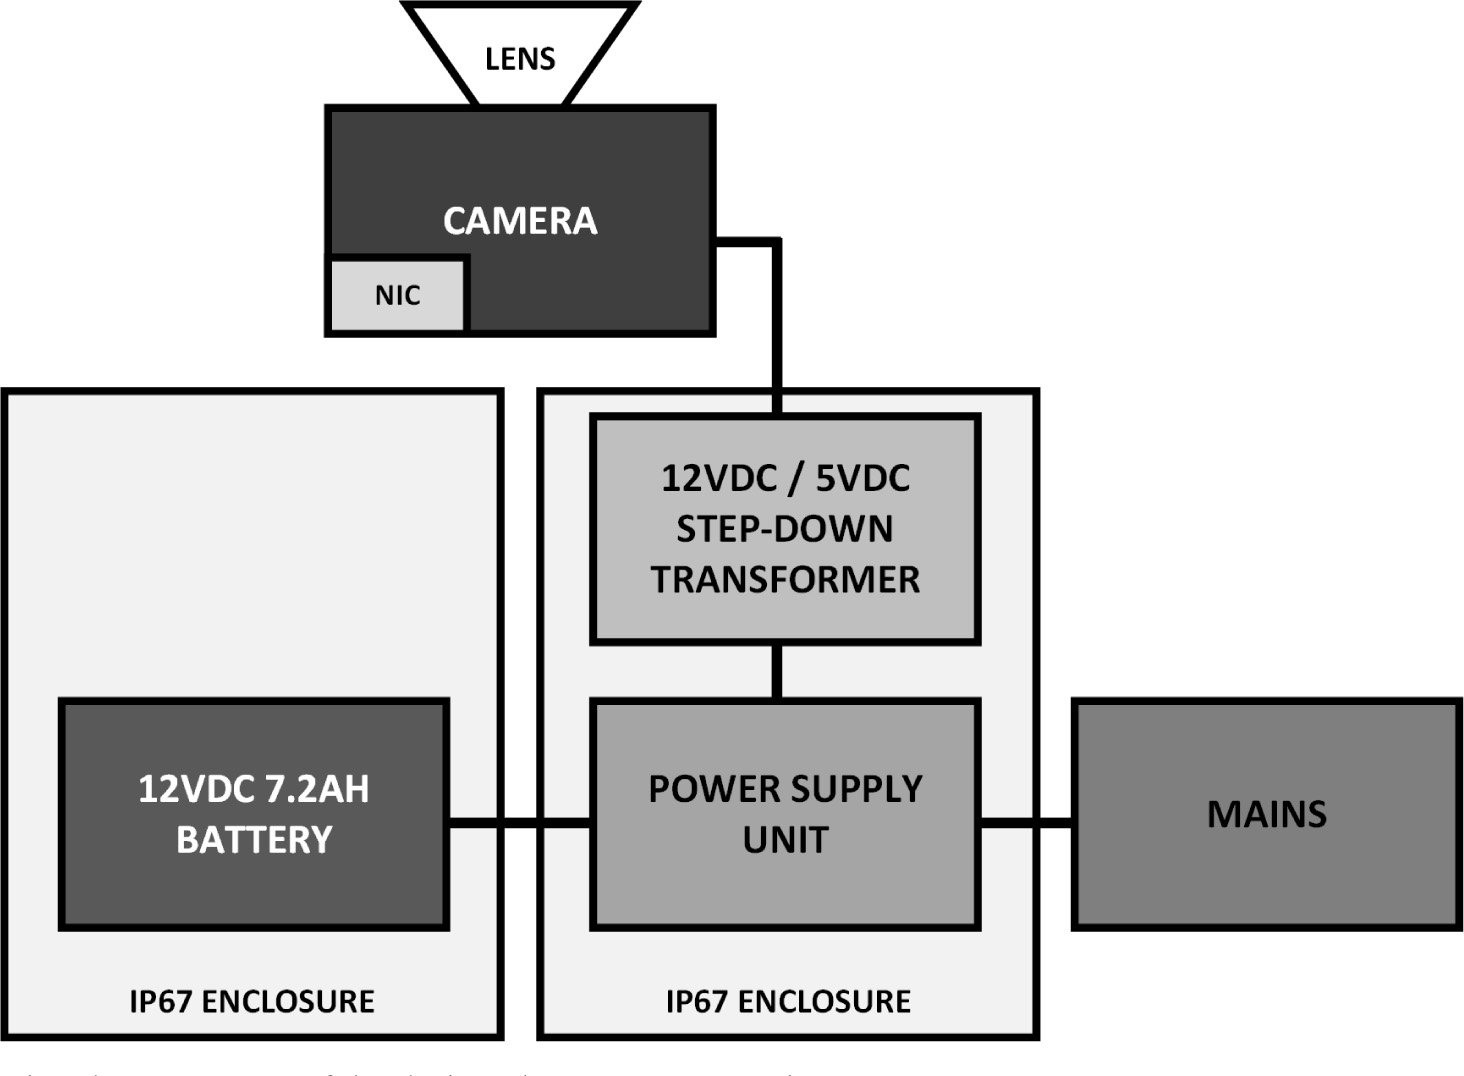 Optoelectronic systems for automatic vehicle counting and